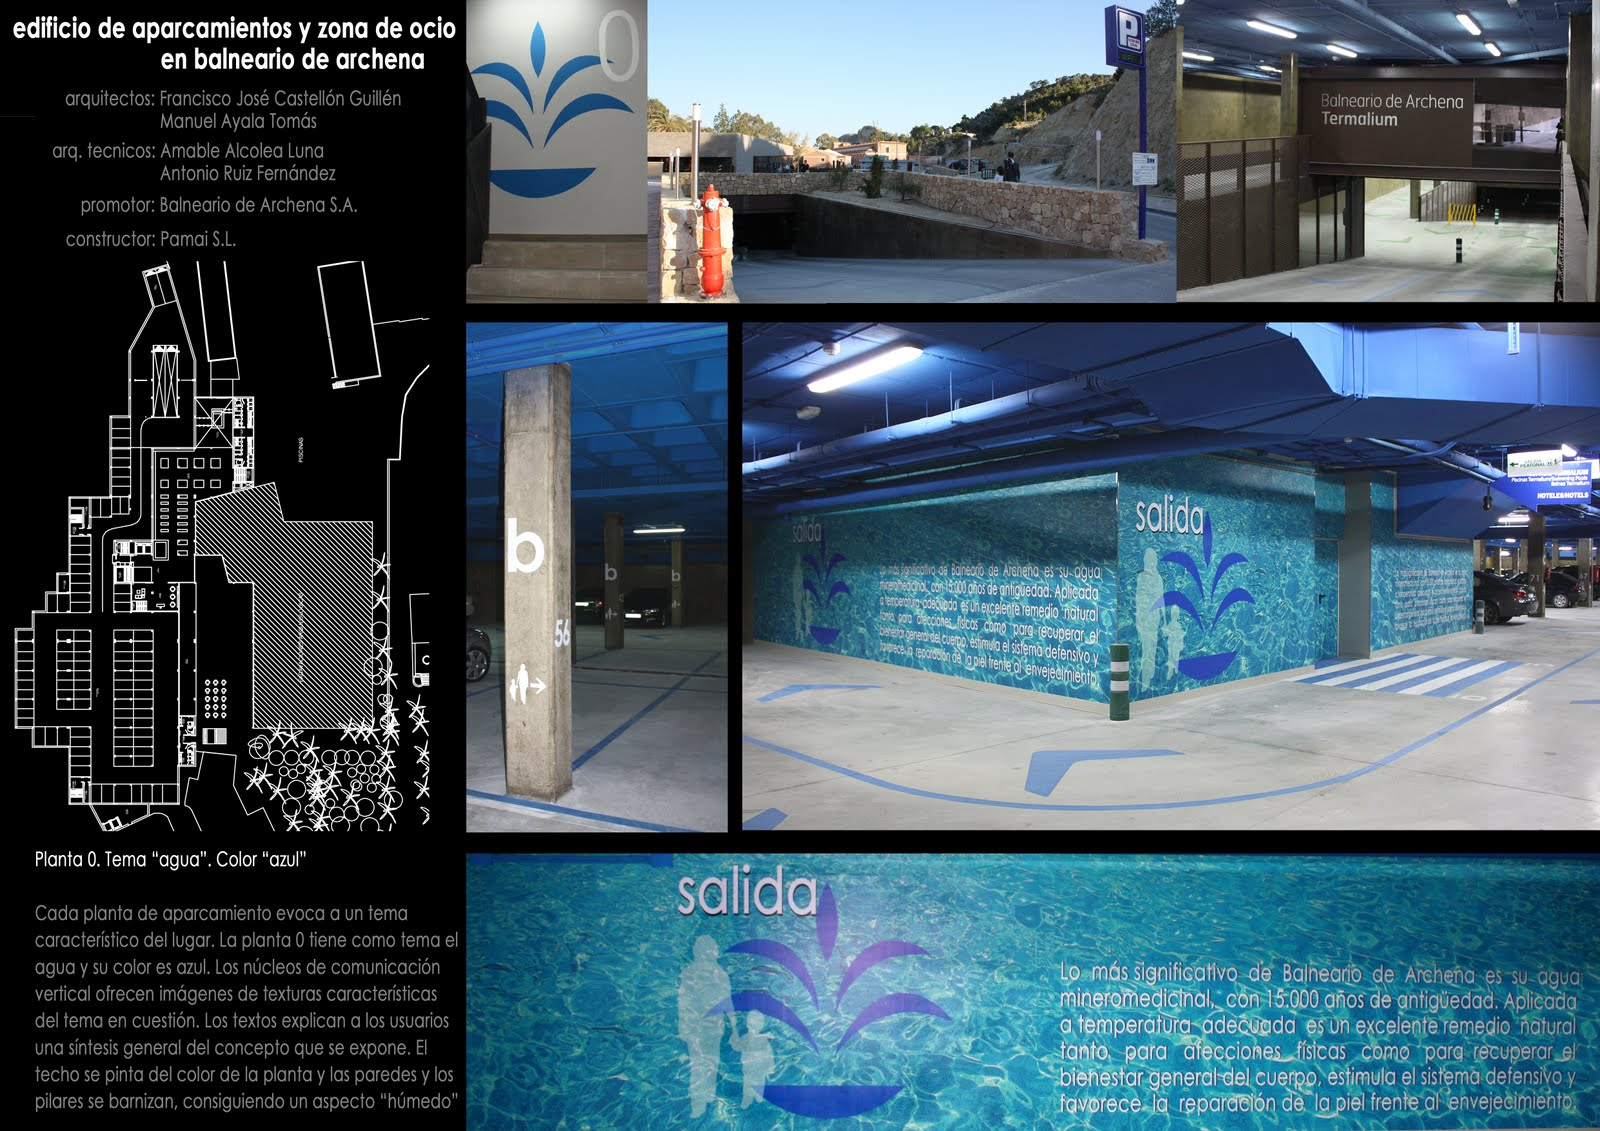 Materiales de construccion el amable archena materiales - Materiales de construccion murcia ...